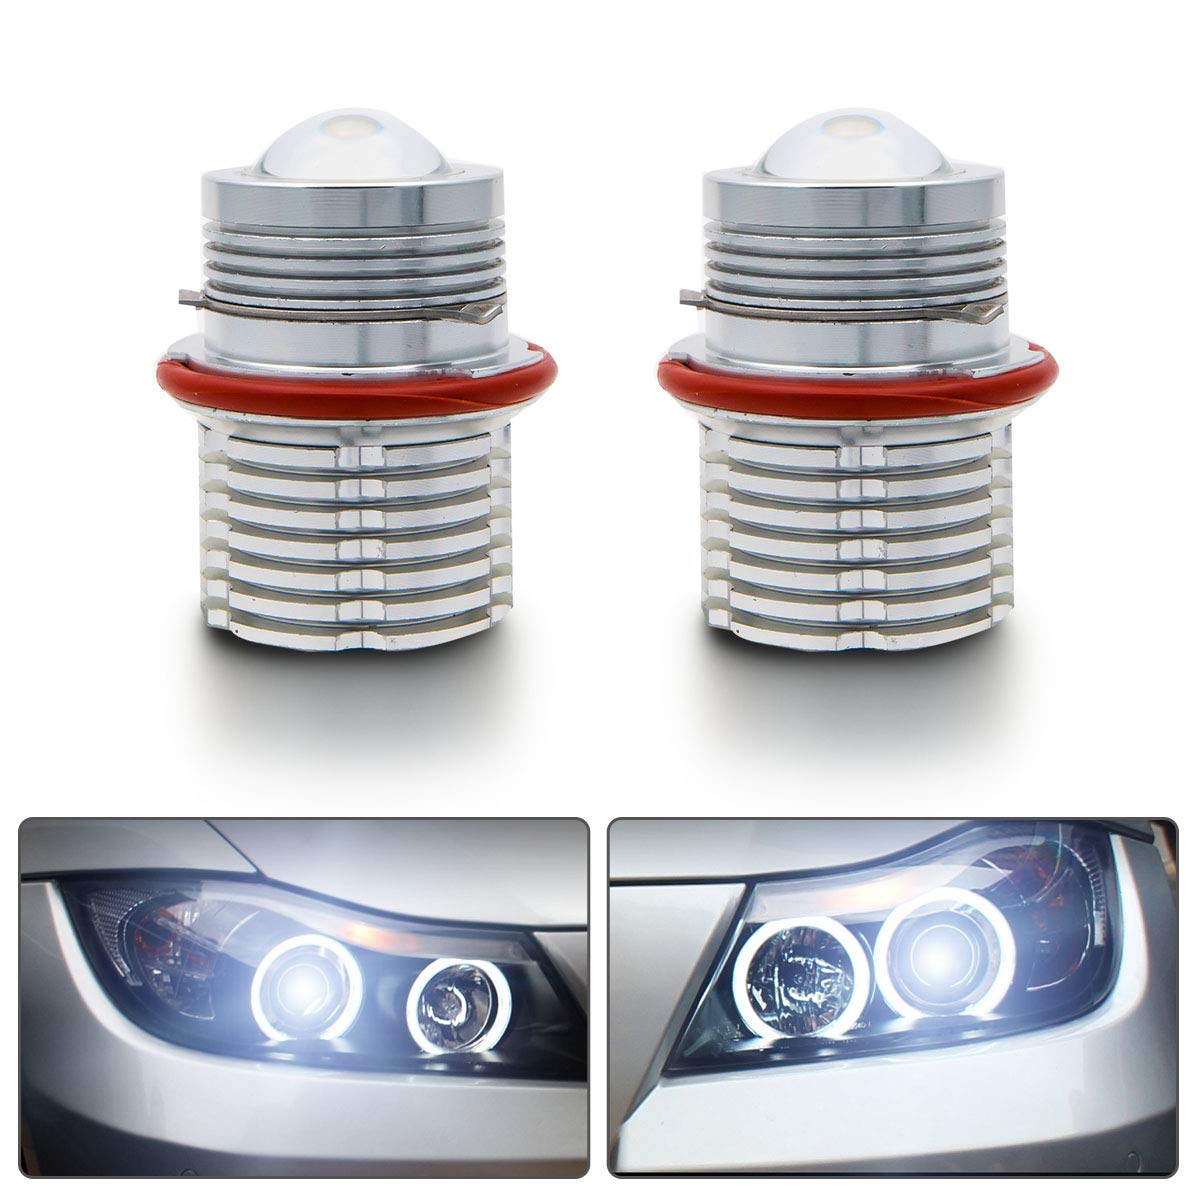 Angel Eyes Led Lights, Maso H8 120W CREE LED Marker Halo Light E82 E90 E92 E60 E61 E63 E89 X6